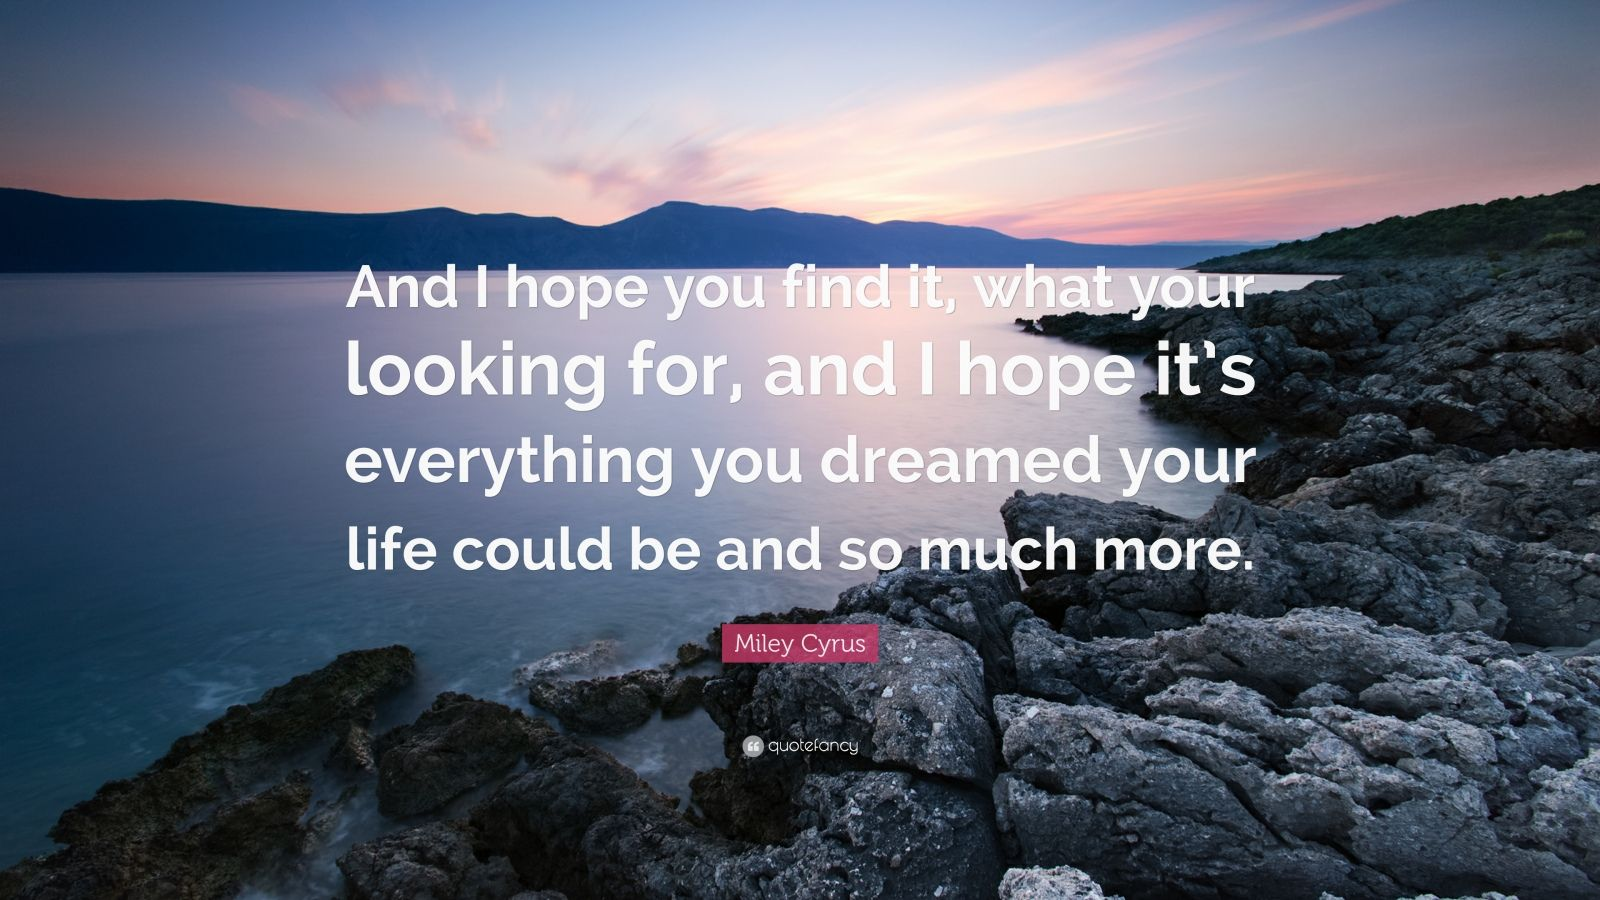 """Miley Cyrus Quote: """"And I hope you find it, what your looking for, and I hope it's everything you dreamed your life could be and so much more."""""""